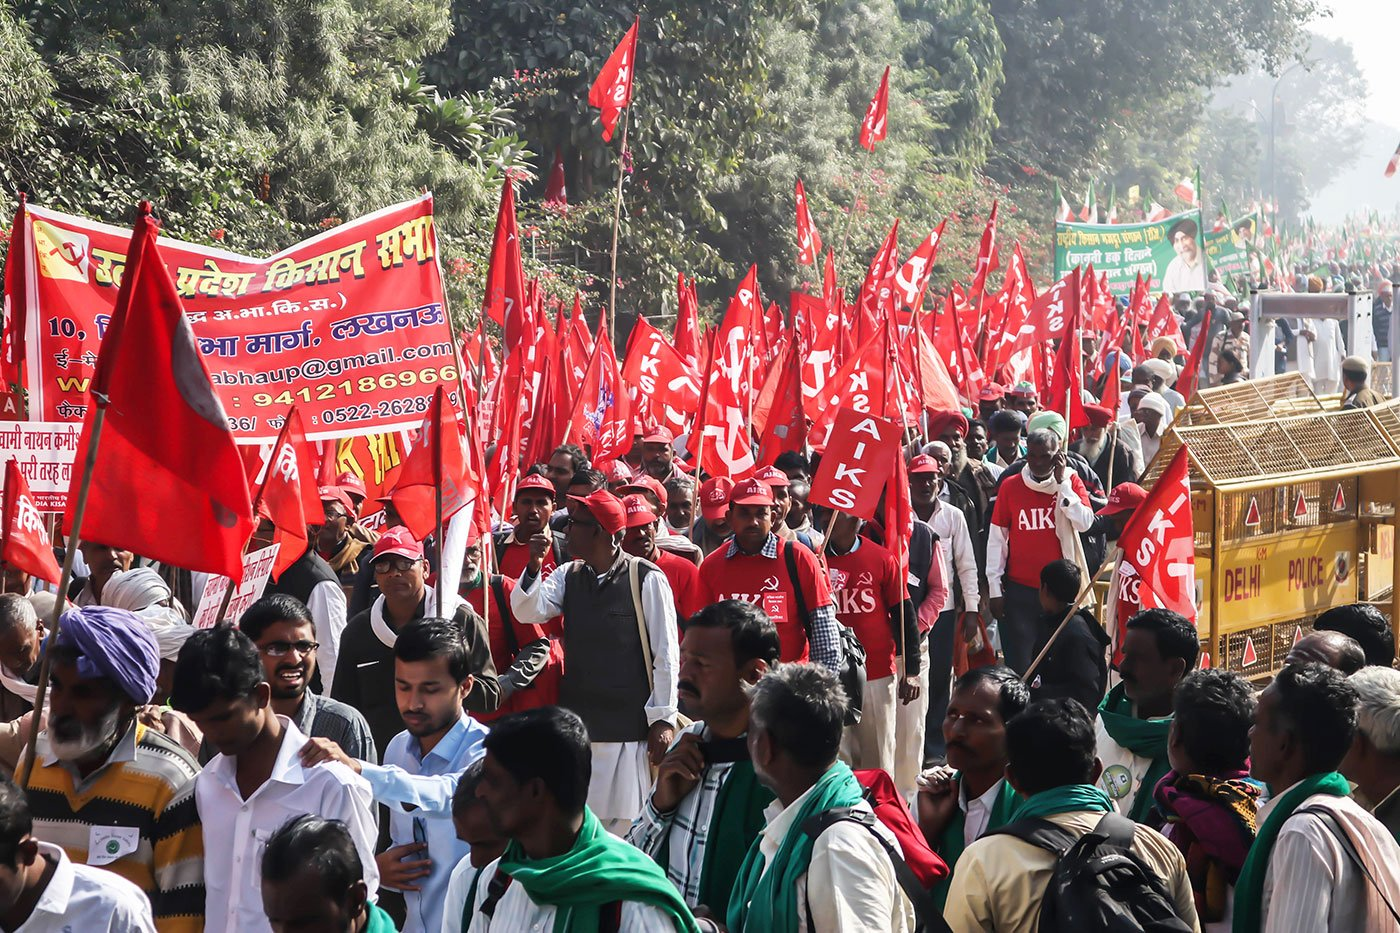 Farmers gather together people from their villages and districts and get ready to march.